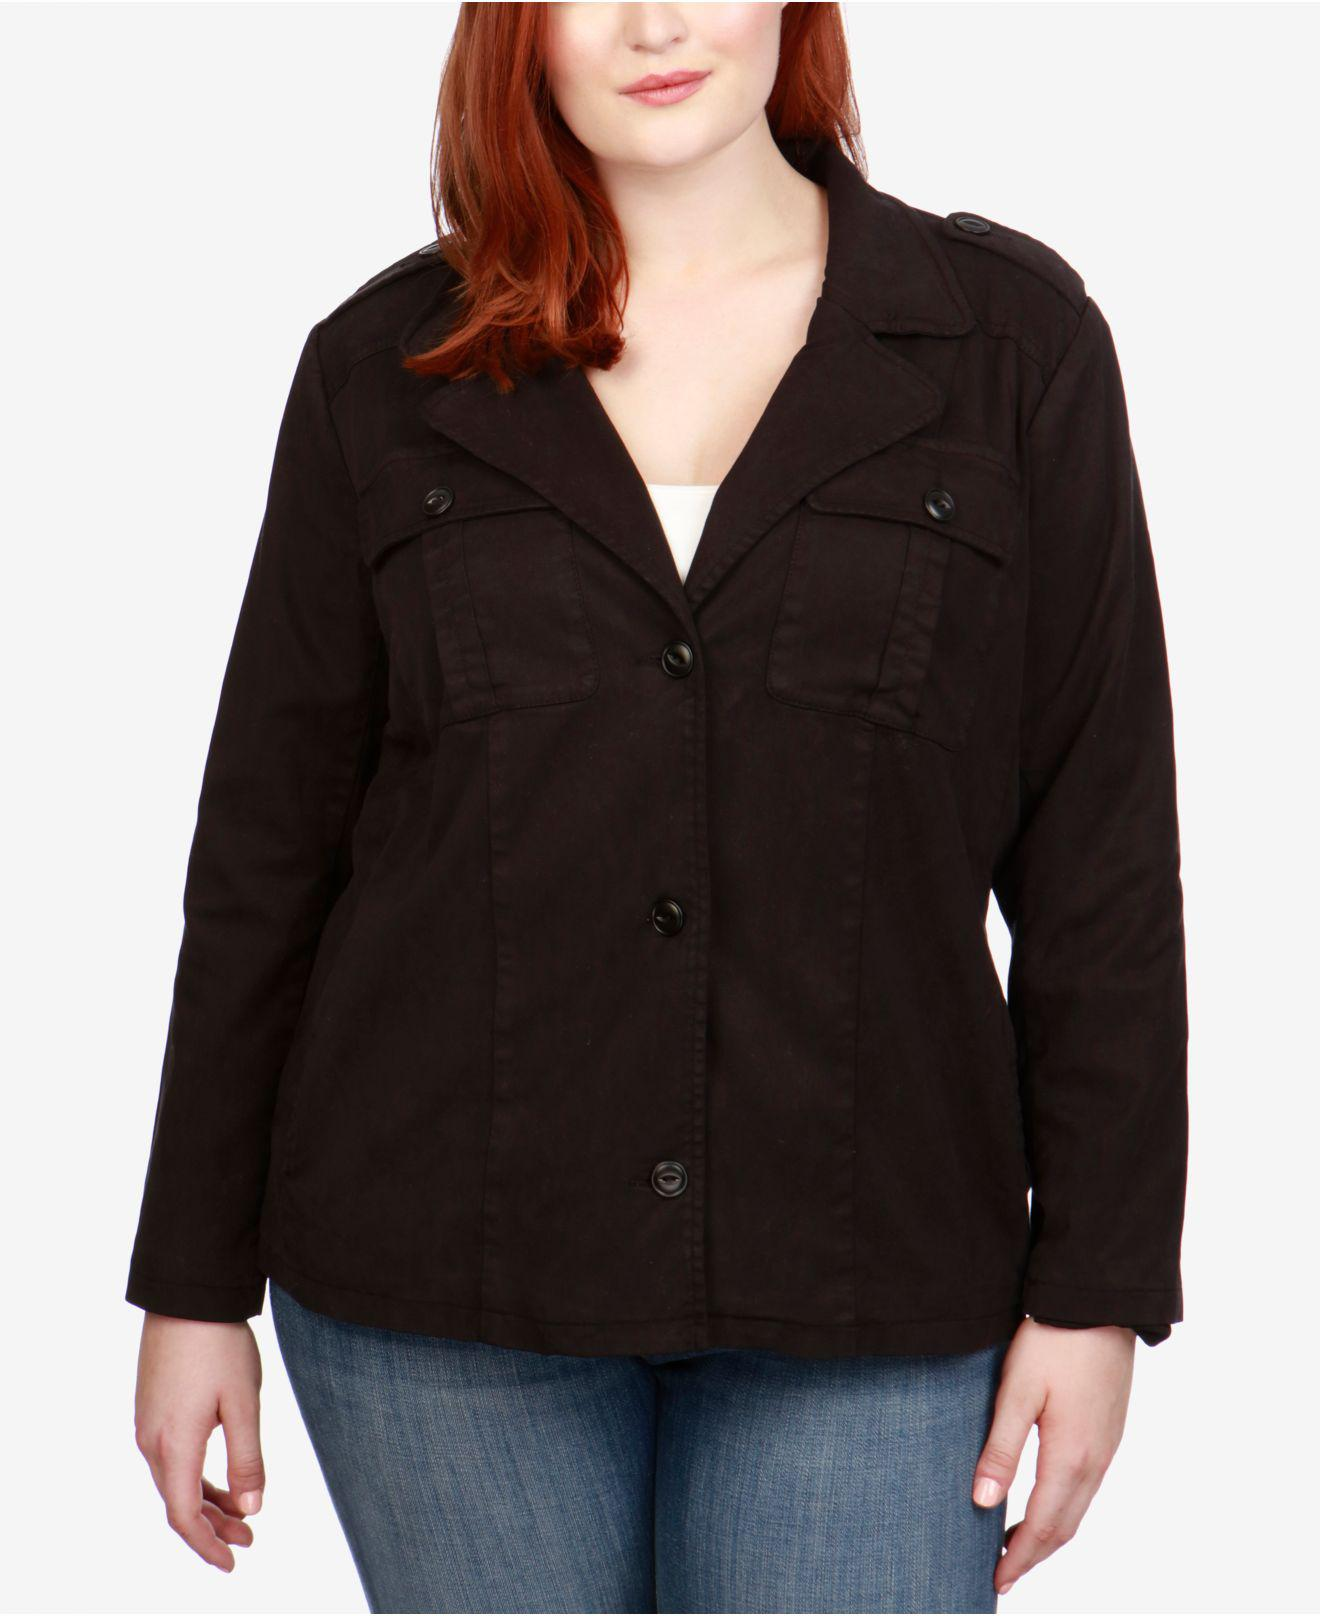 0a3016bdfbcdf Lyst - Lucky Brand Trendy Plus Size Cropped Utility Jacket in Black